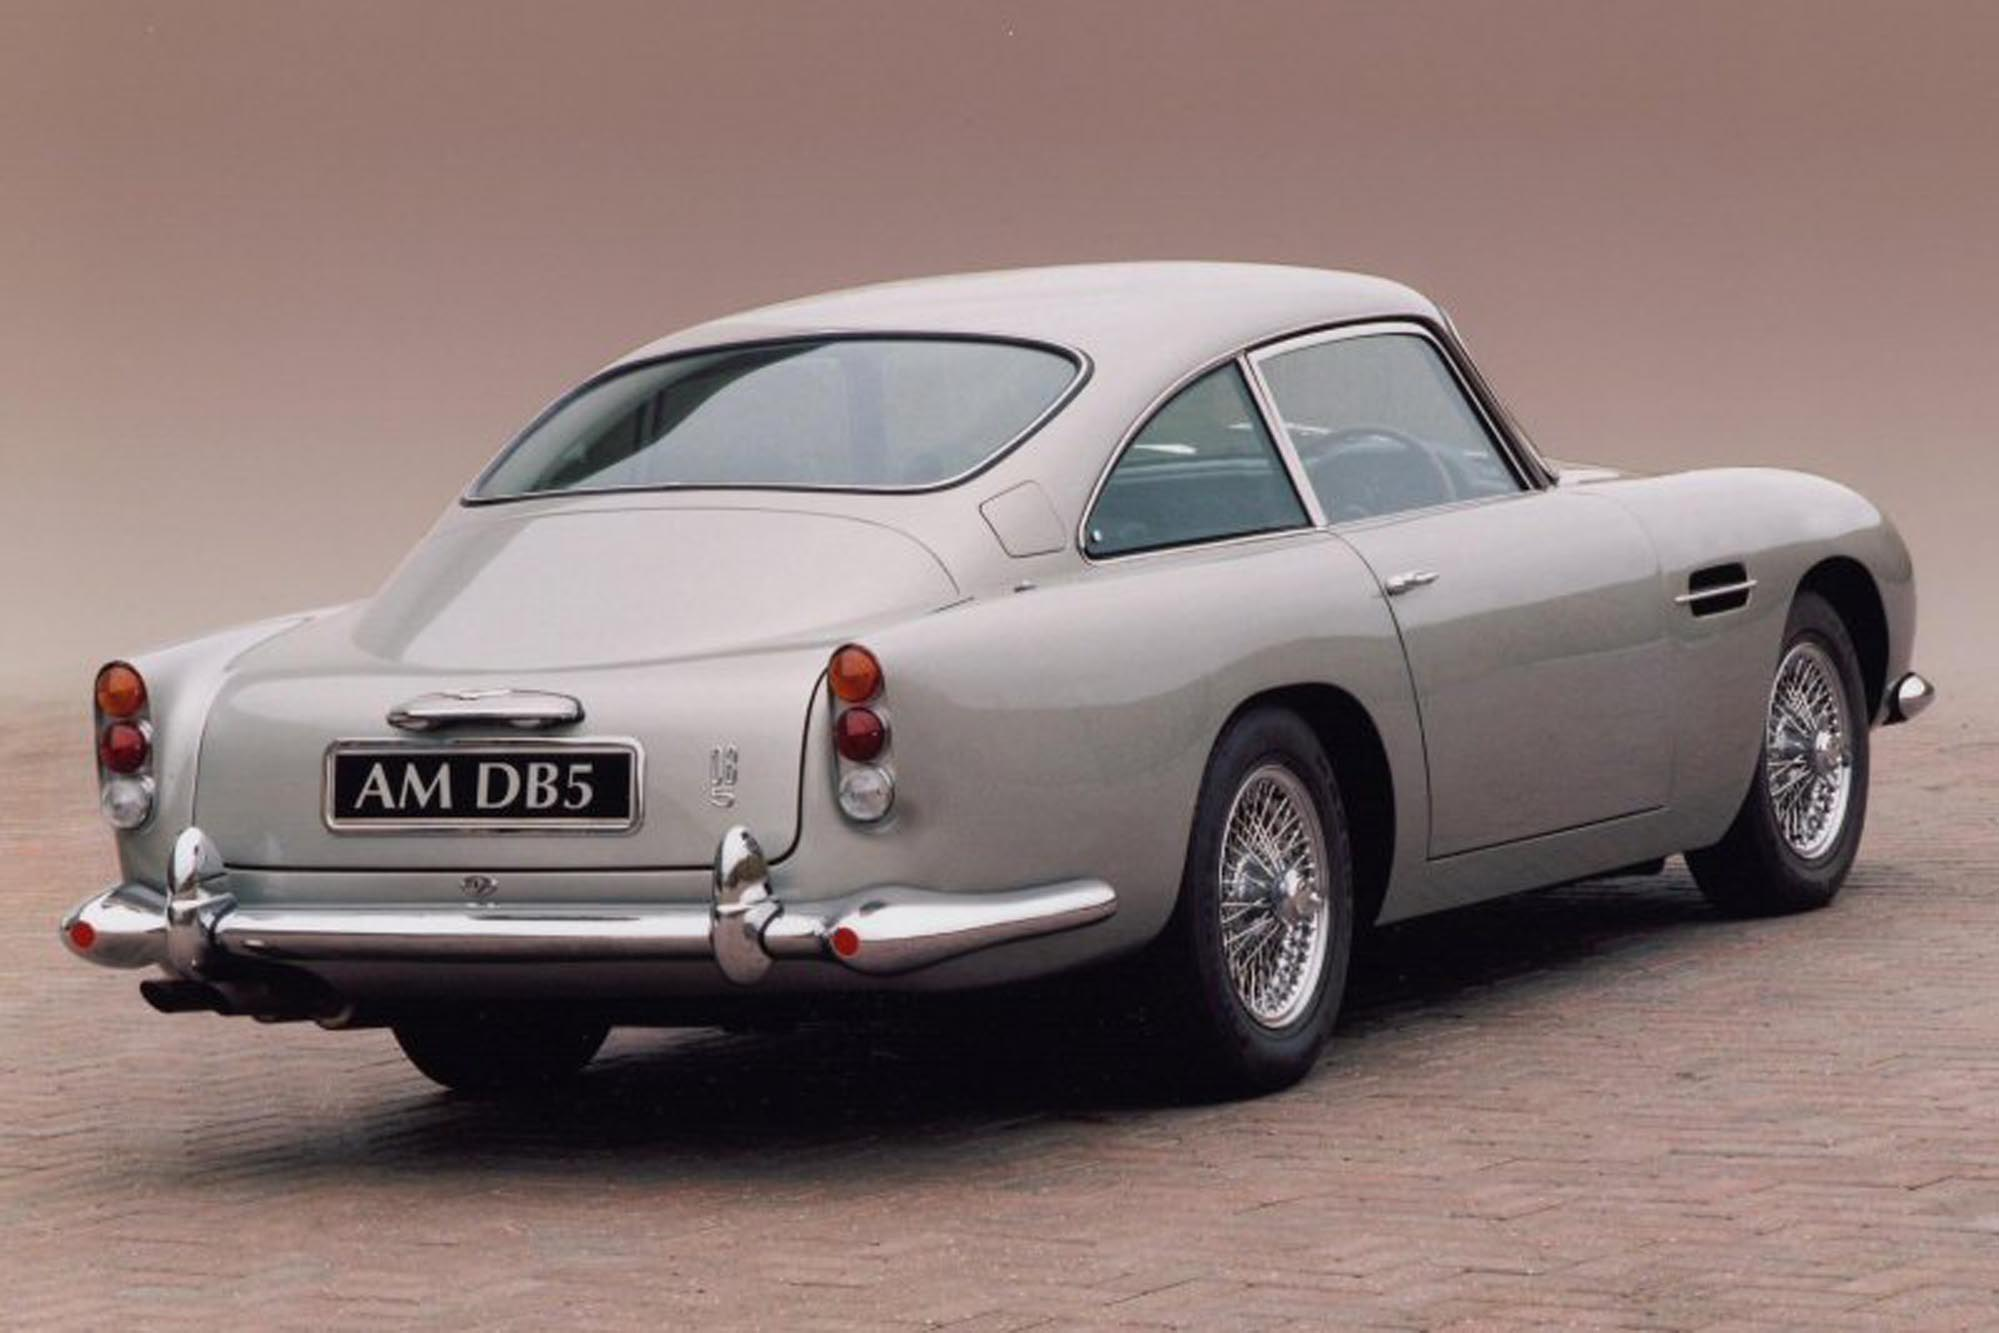 une voiture une miniature aston martin db5 filrouge automobile. Black Bedroom Furniture Sets. Home Design Ideas